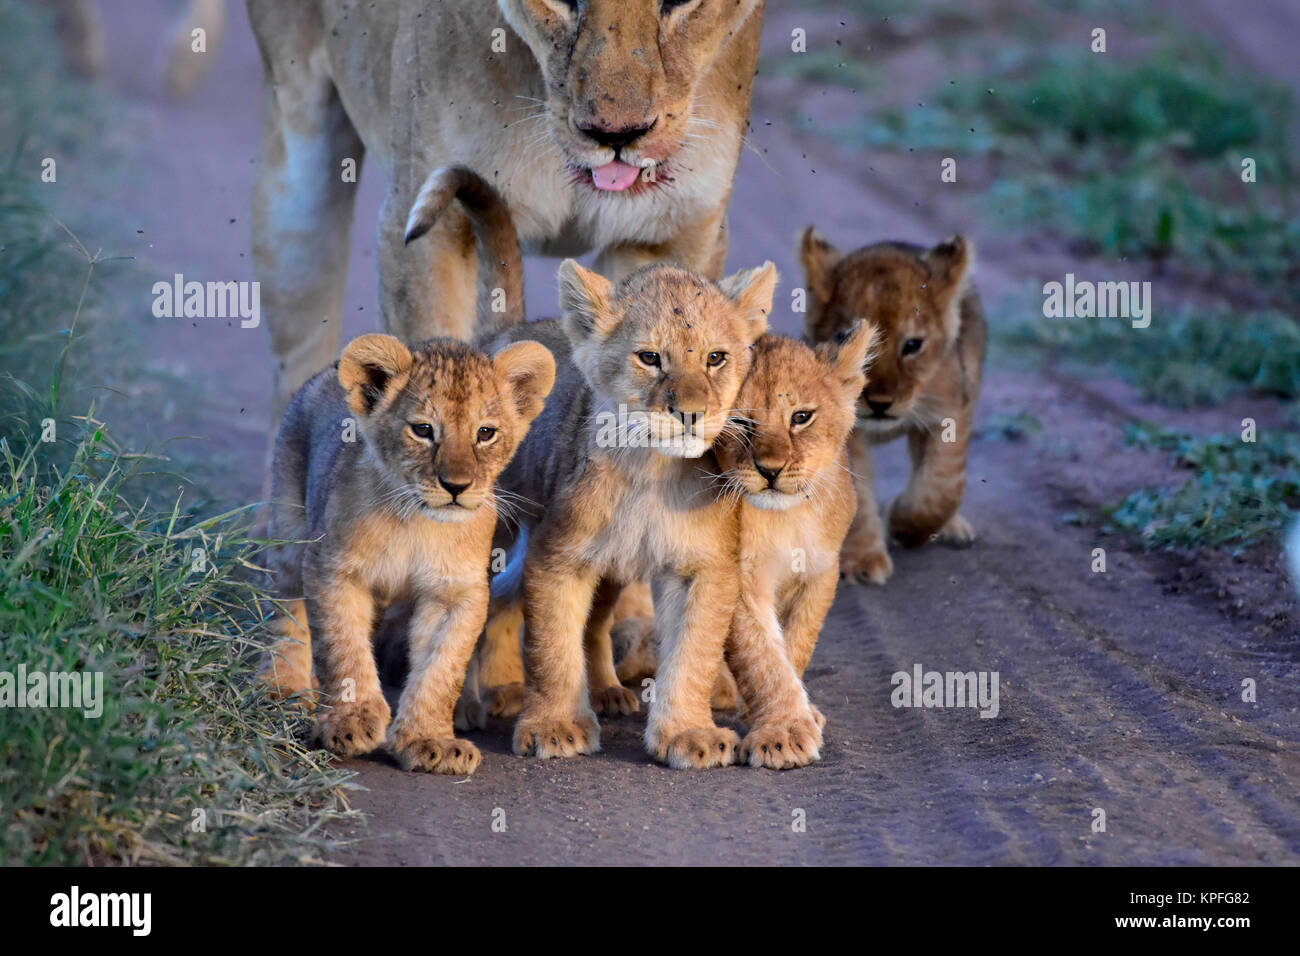 Wildlife sightseeing in one of the prime wildlife destinations on earht -- Serengeti, Tanzania. Lioness with 5 small Stock Photo